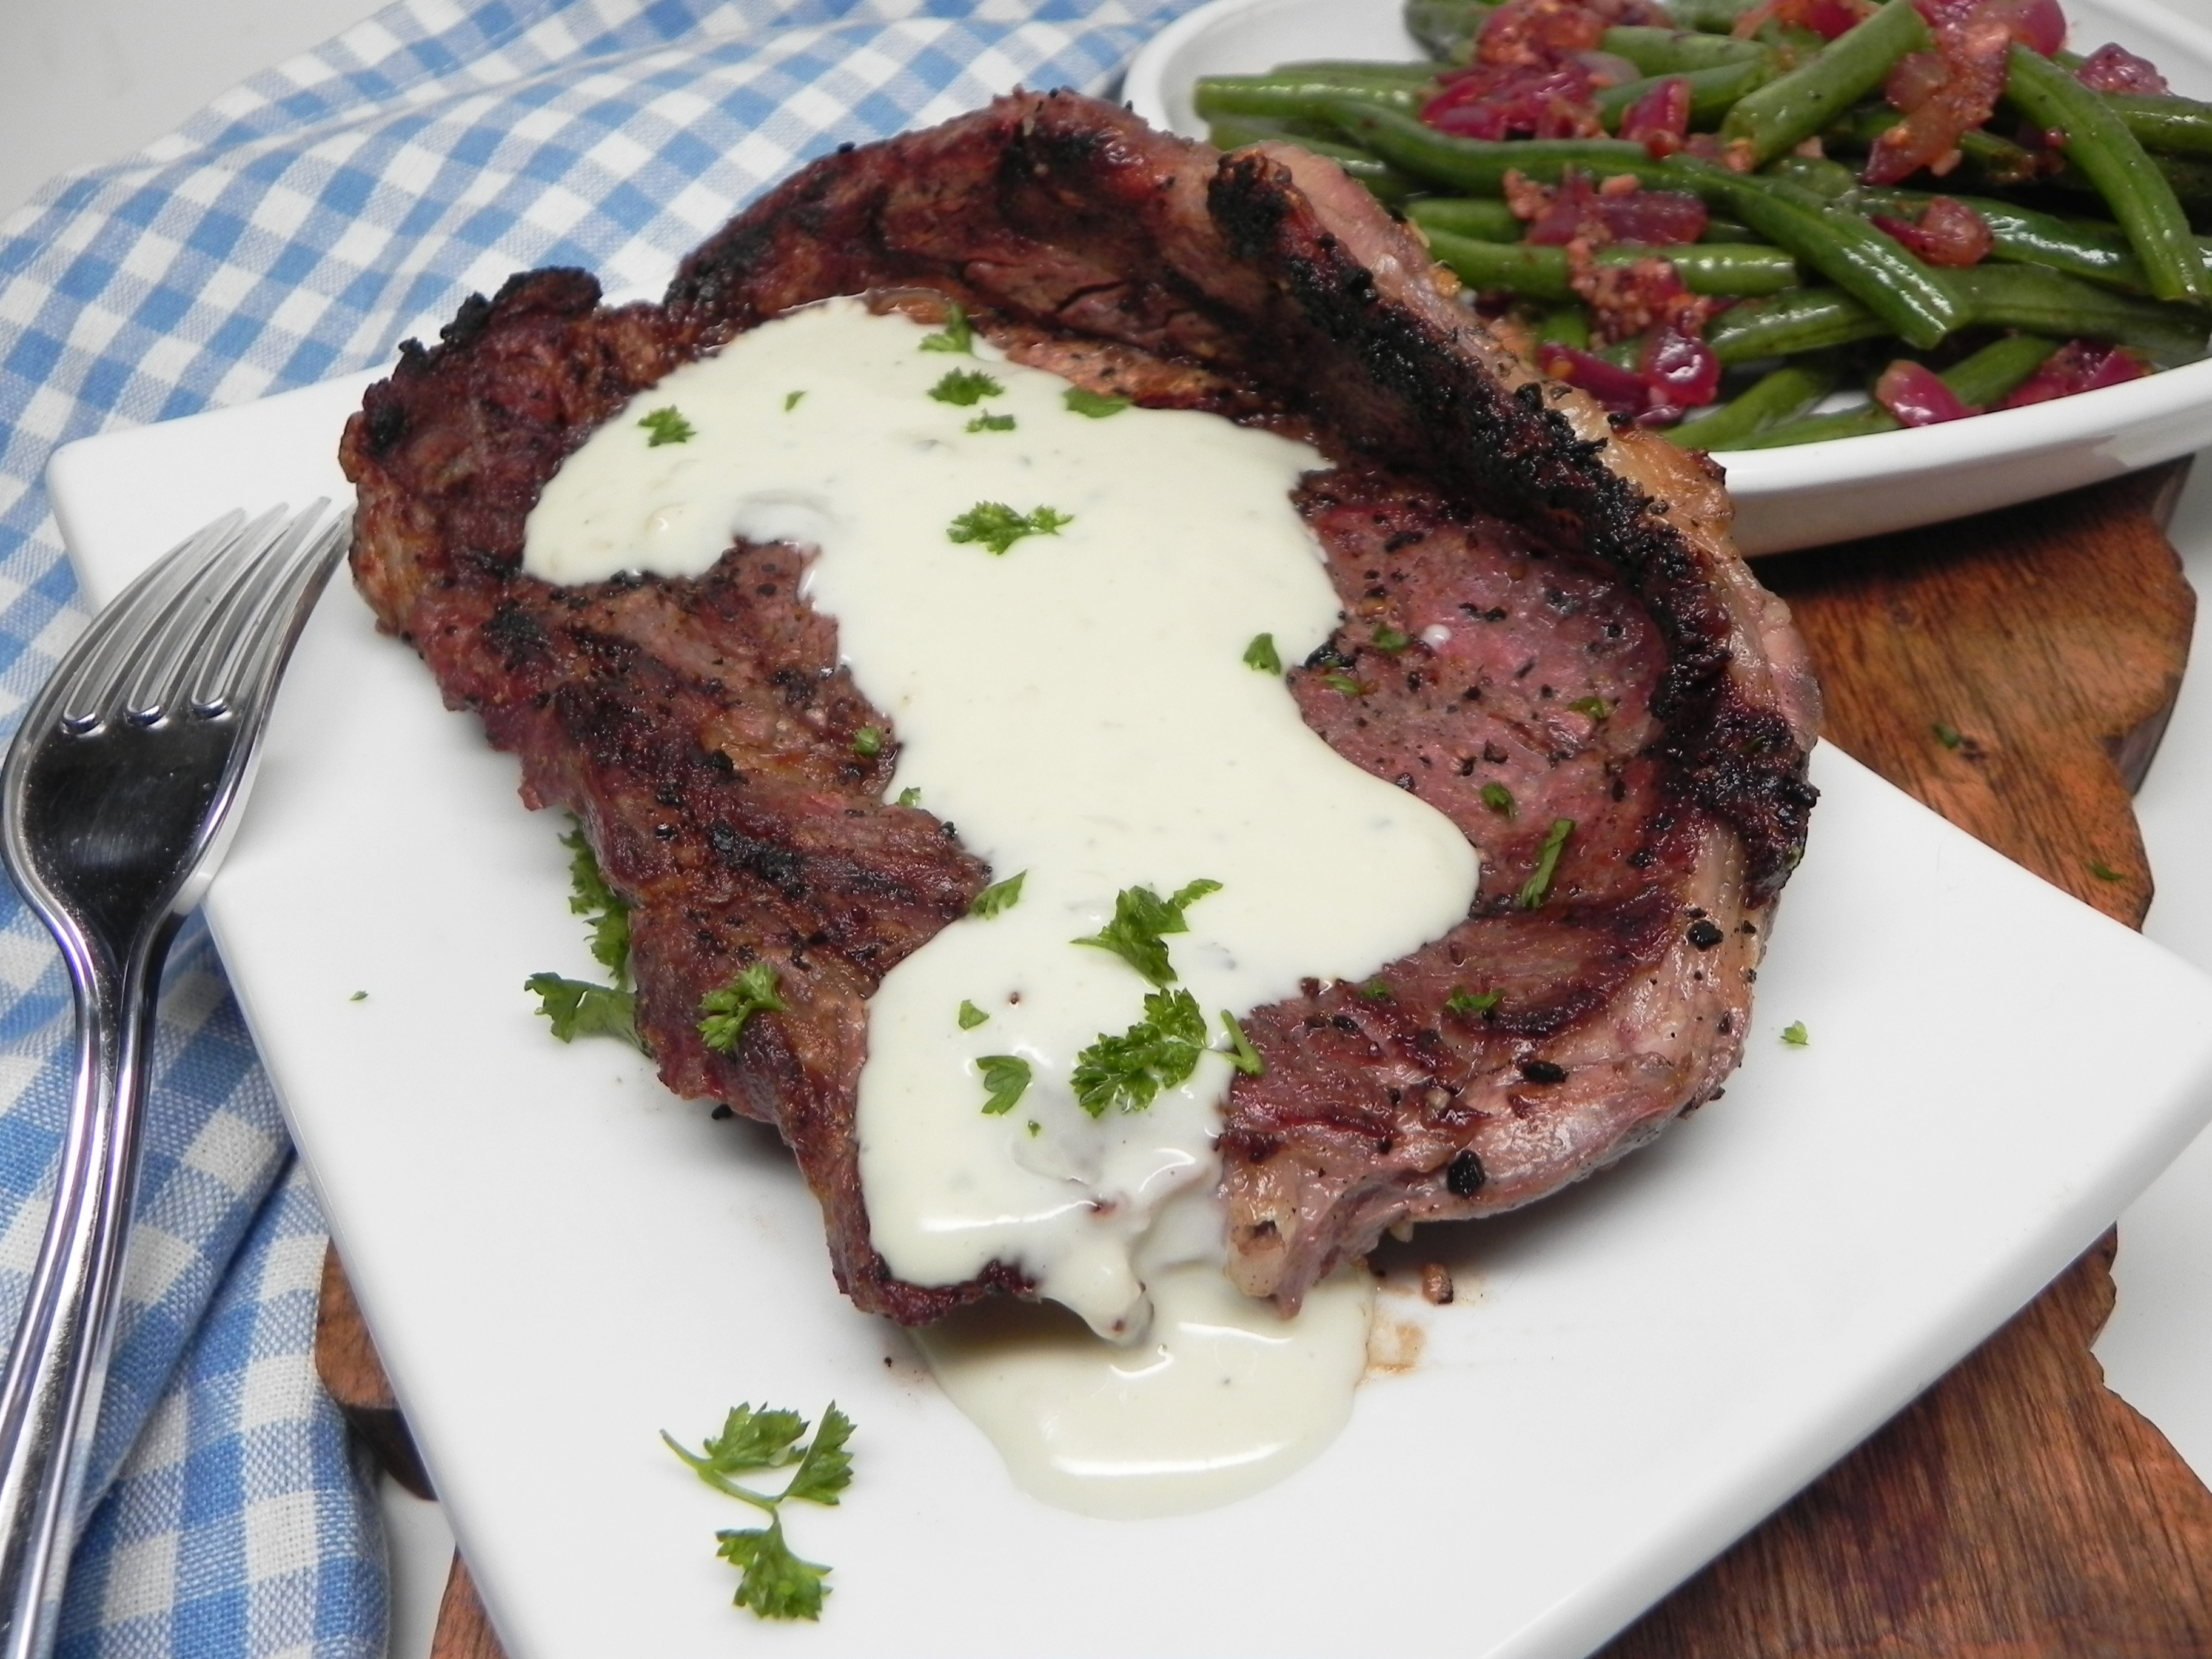 Easy Truffled Blue Cheese Sauce